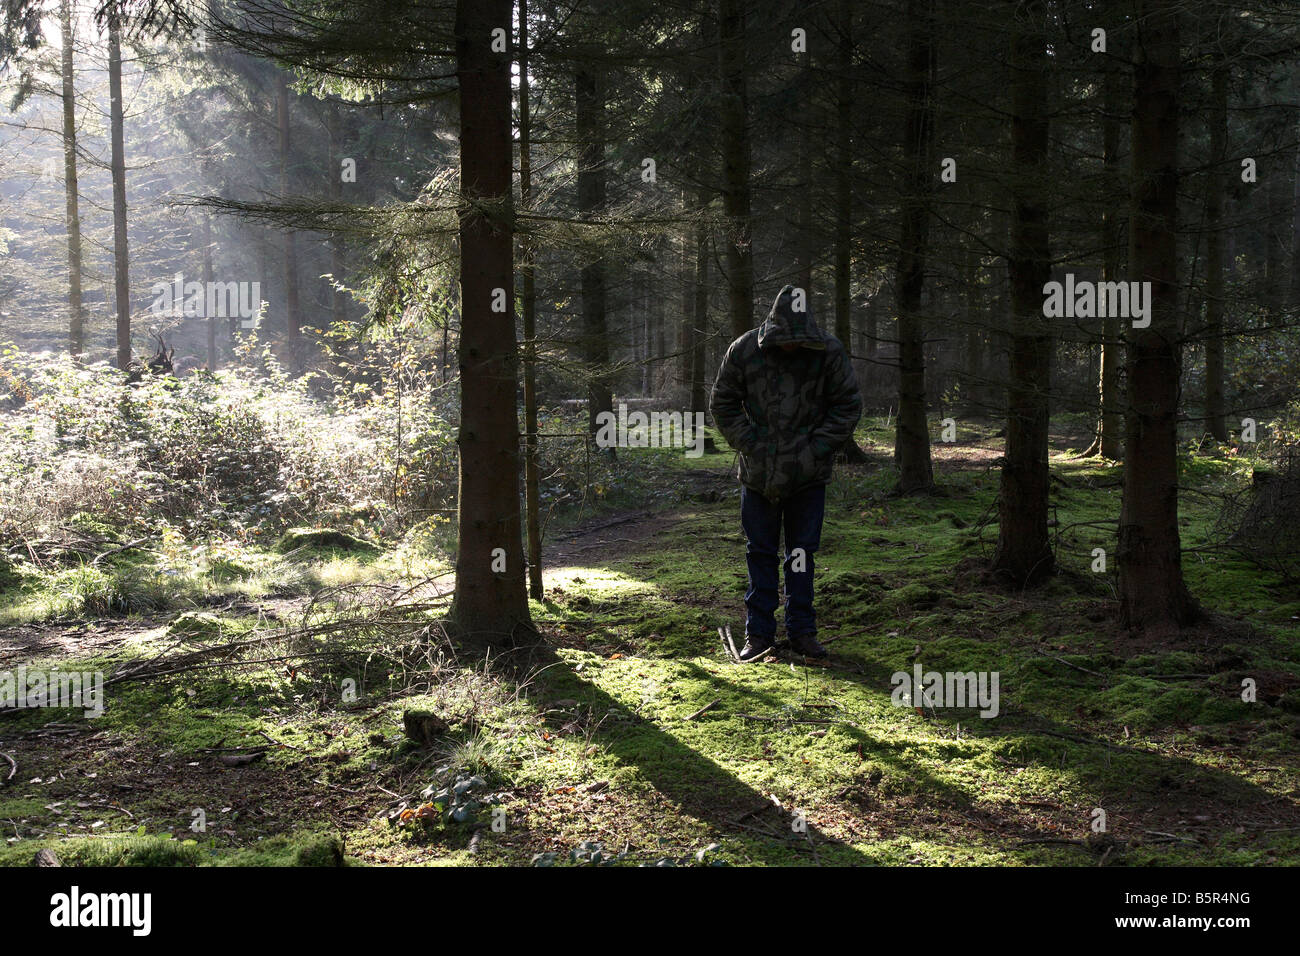 Man standing in wood wearing camouflage jacket - Stock Image